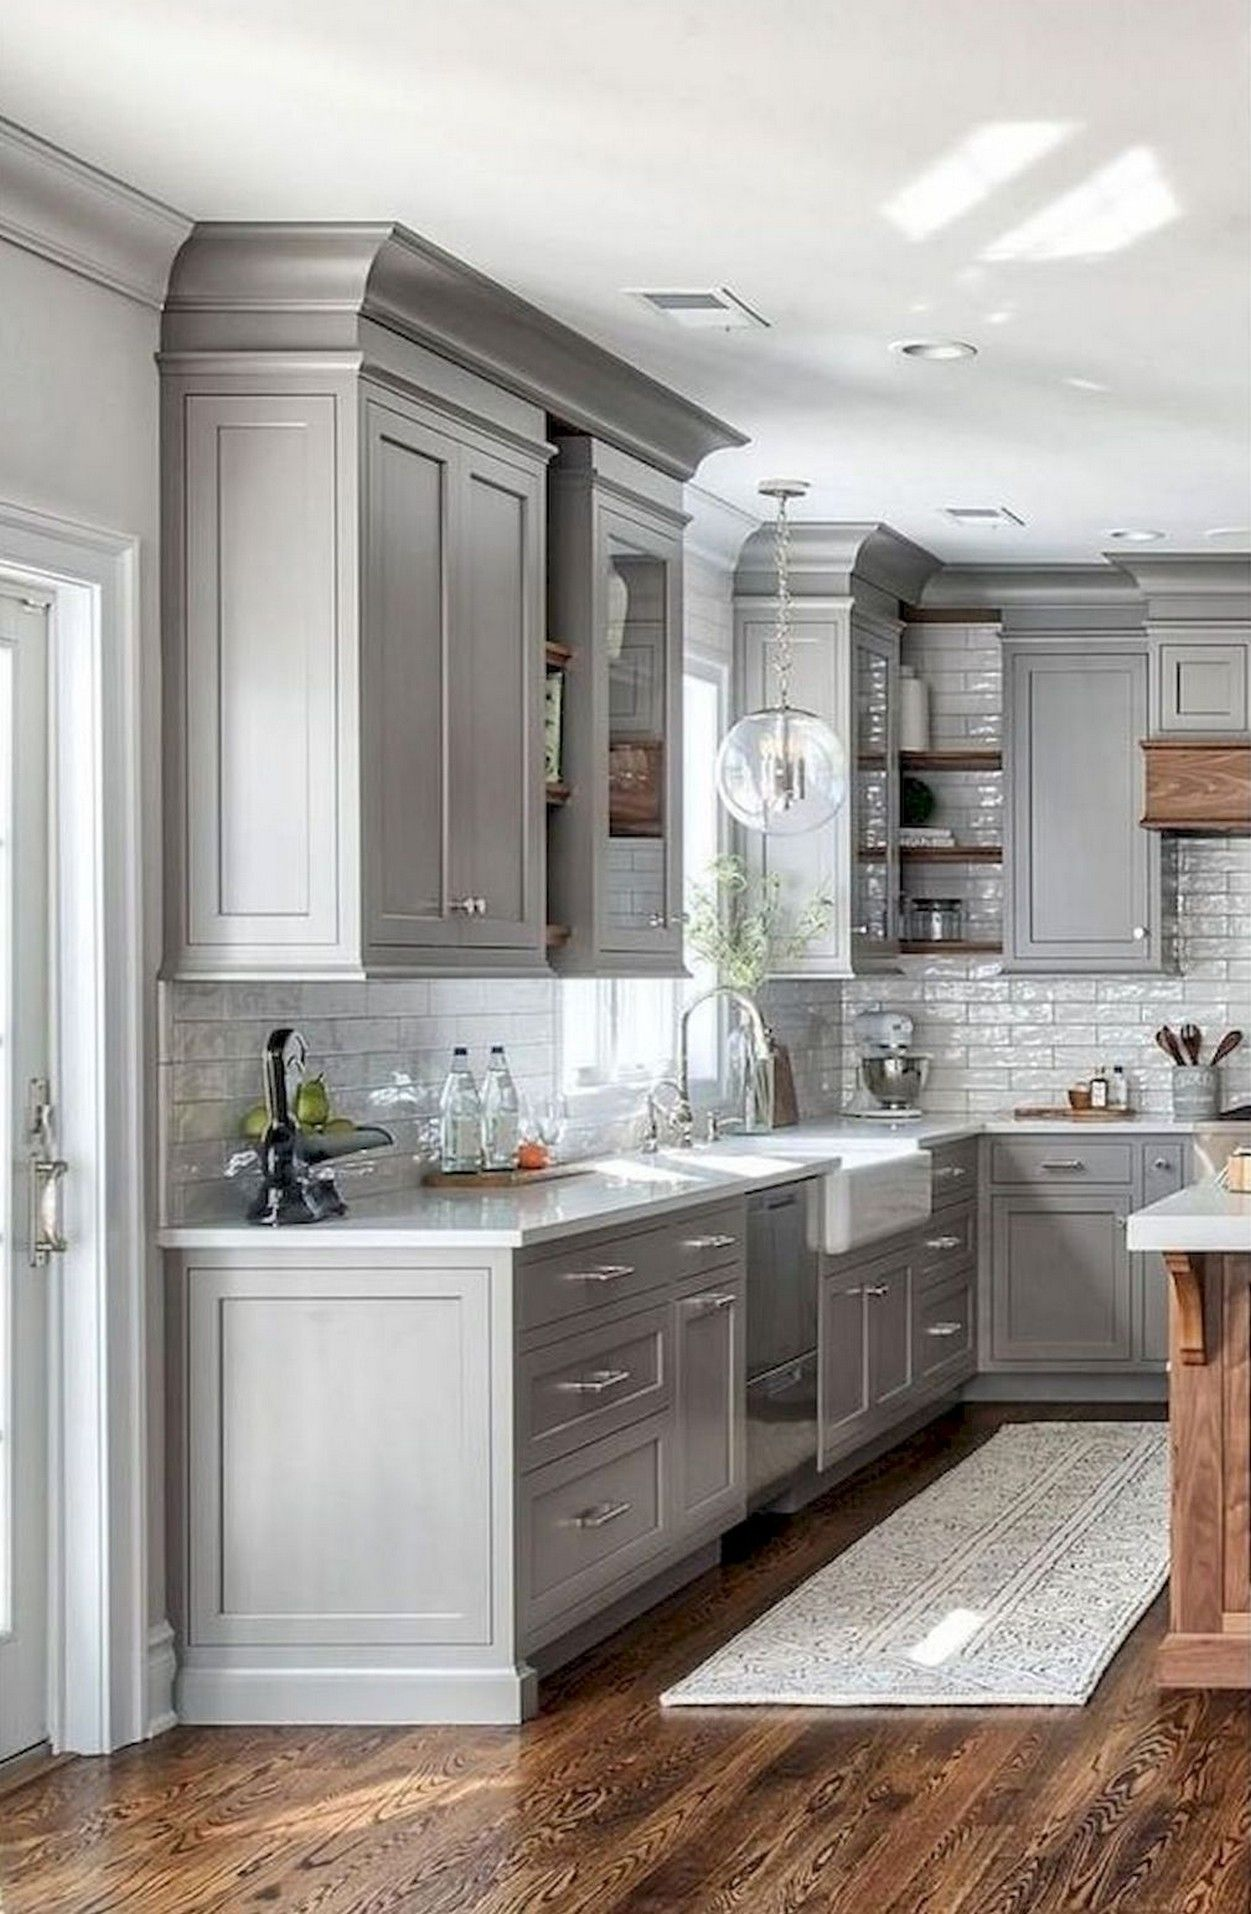 15 Best Kitchen Remodel Ideas Before And After 1 With Images